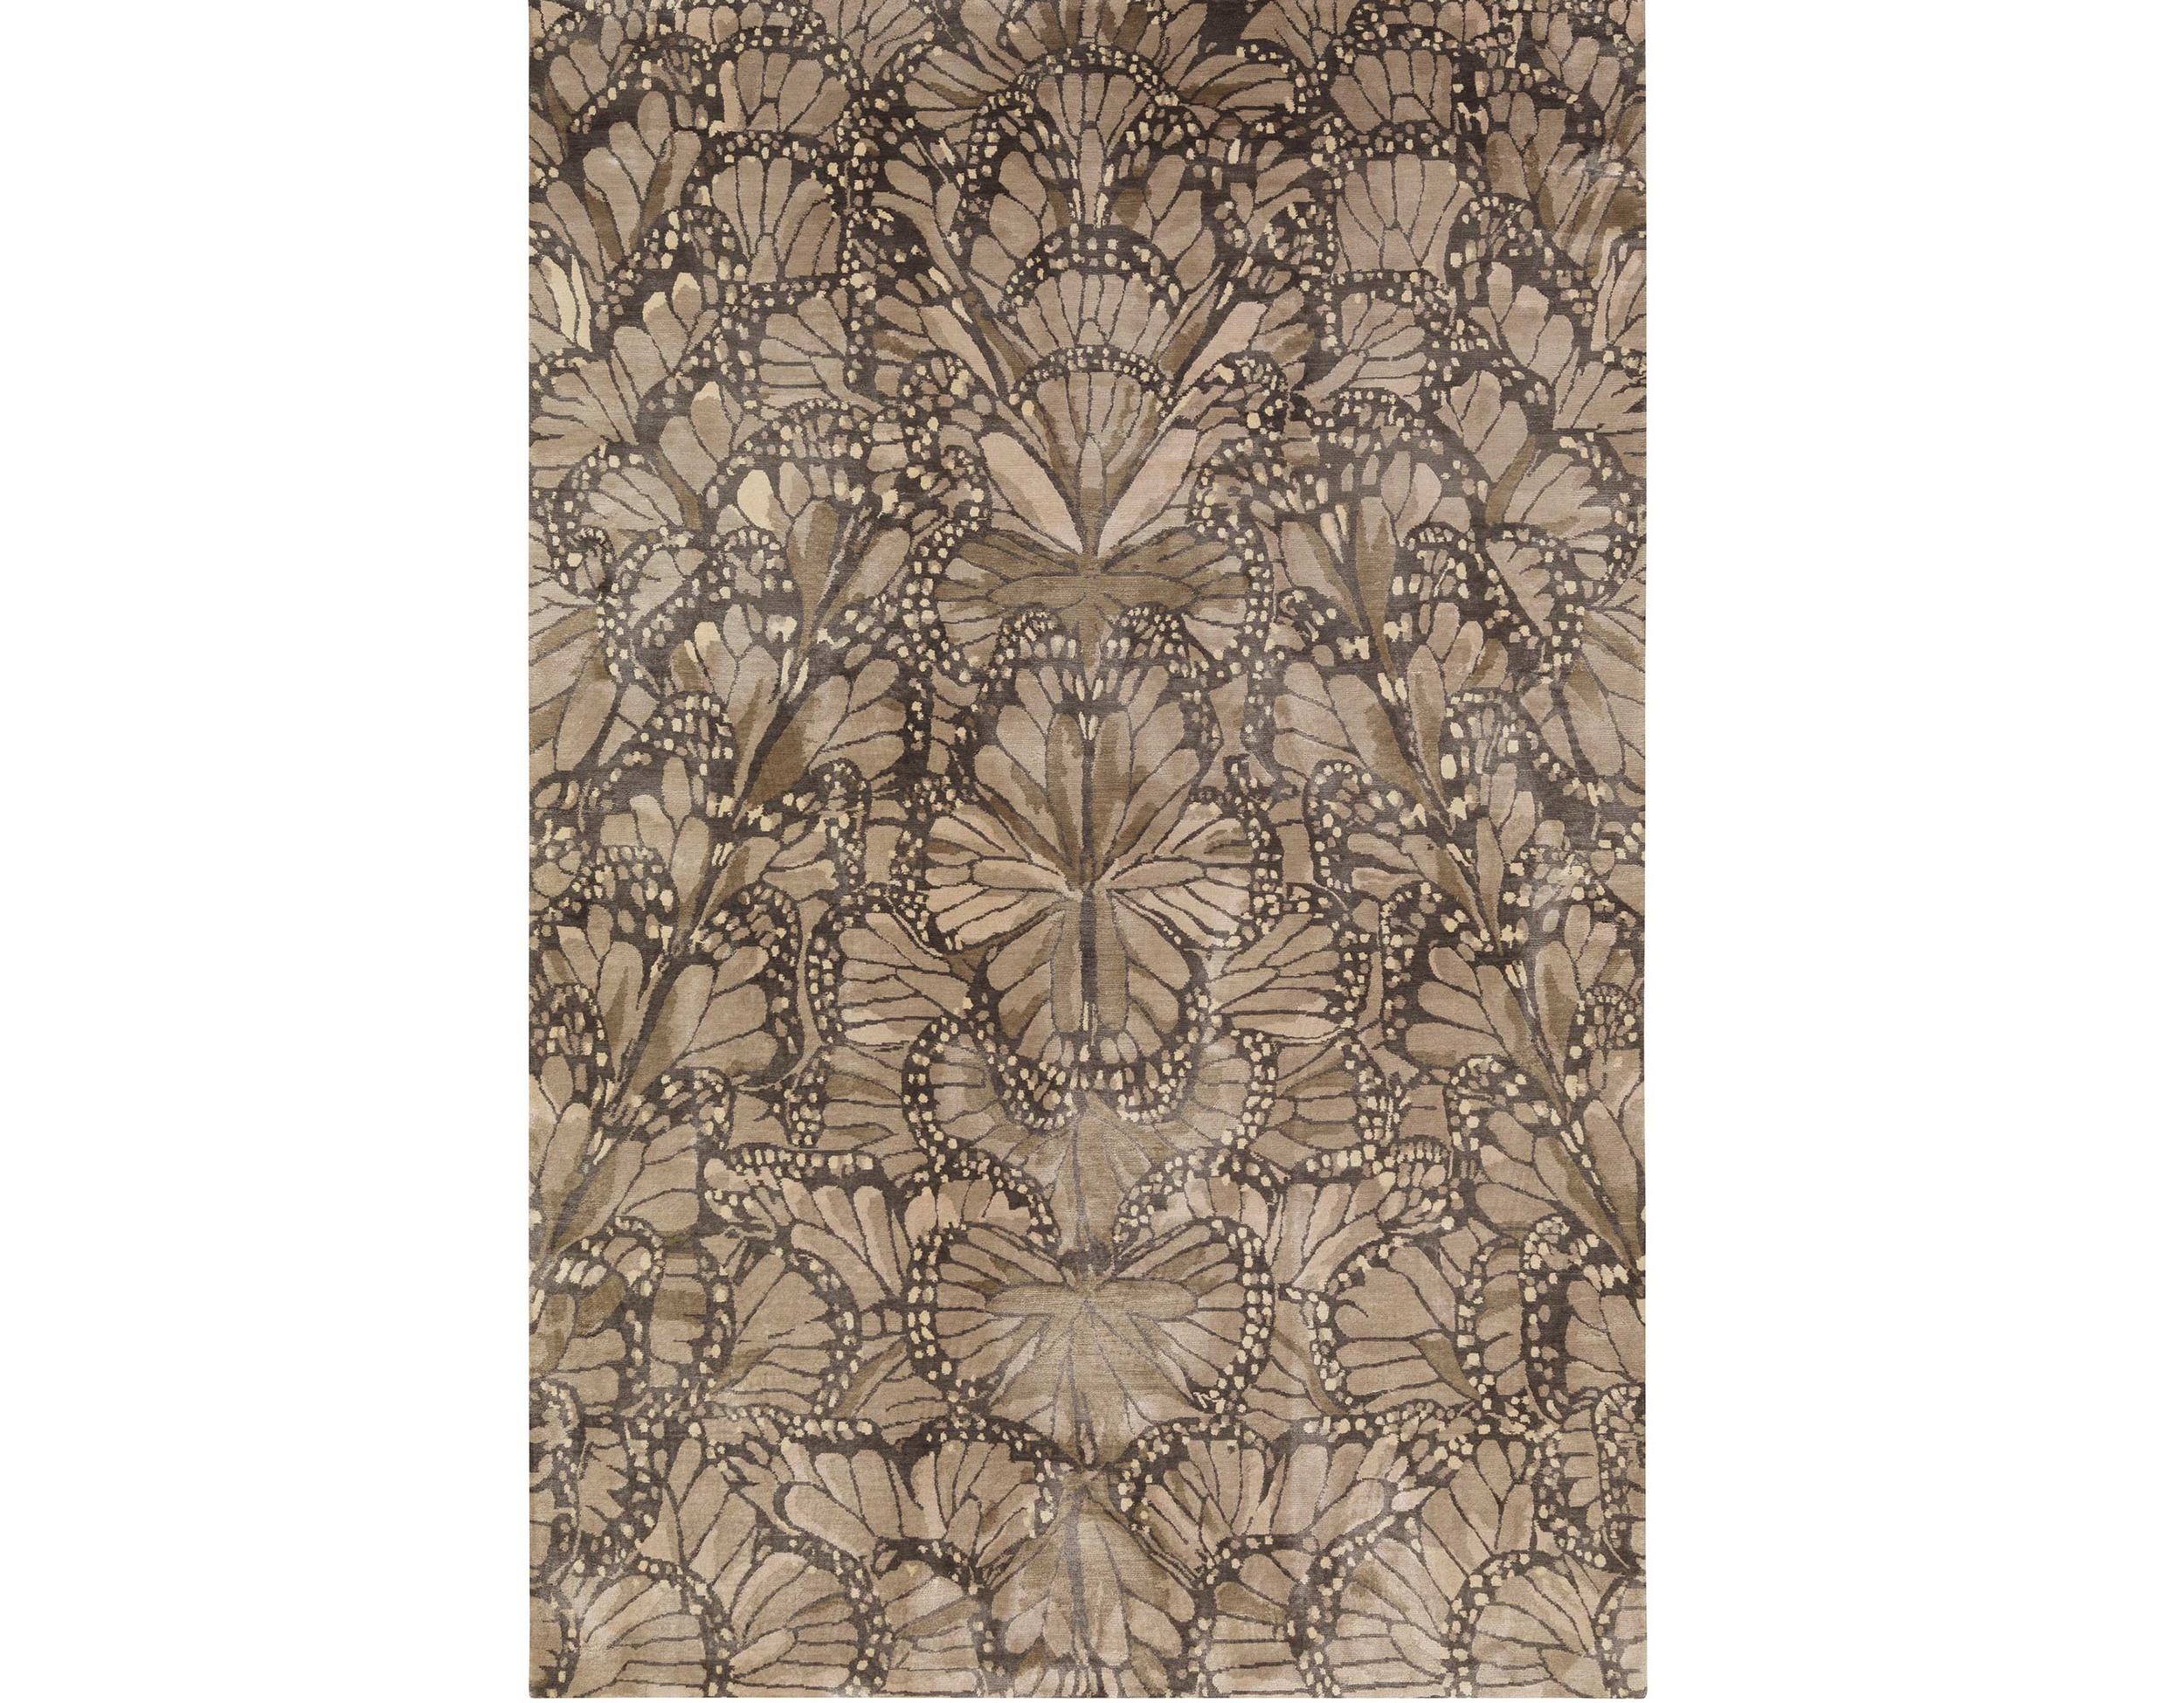 Monarch by Alexandre Mc Queen  The Rug Company